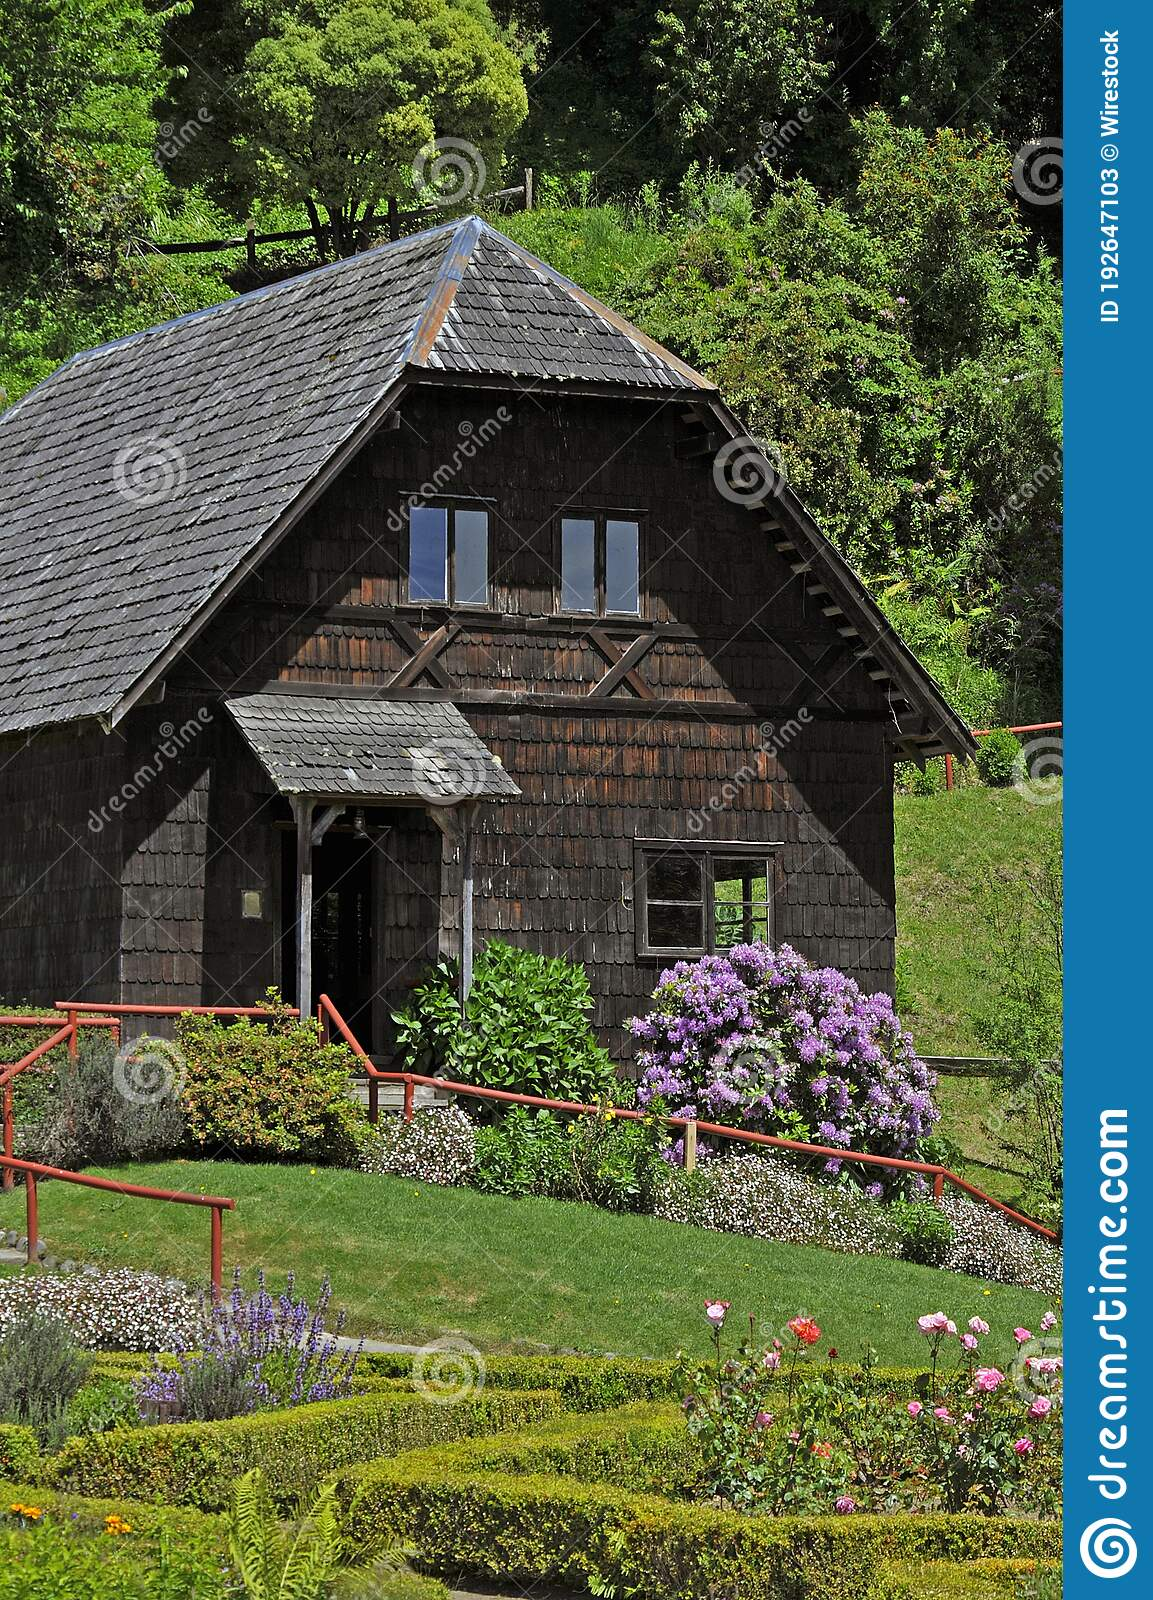 German Colonial House : german, colonial, house, 9,250, Colonial, Museum, Photos, Royalty-Free, Stock, Dreamstime